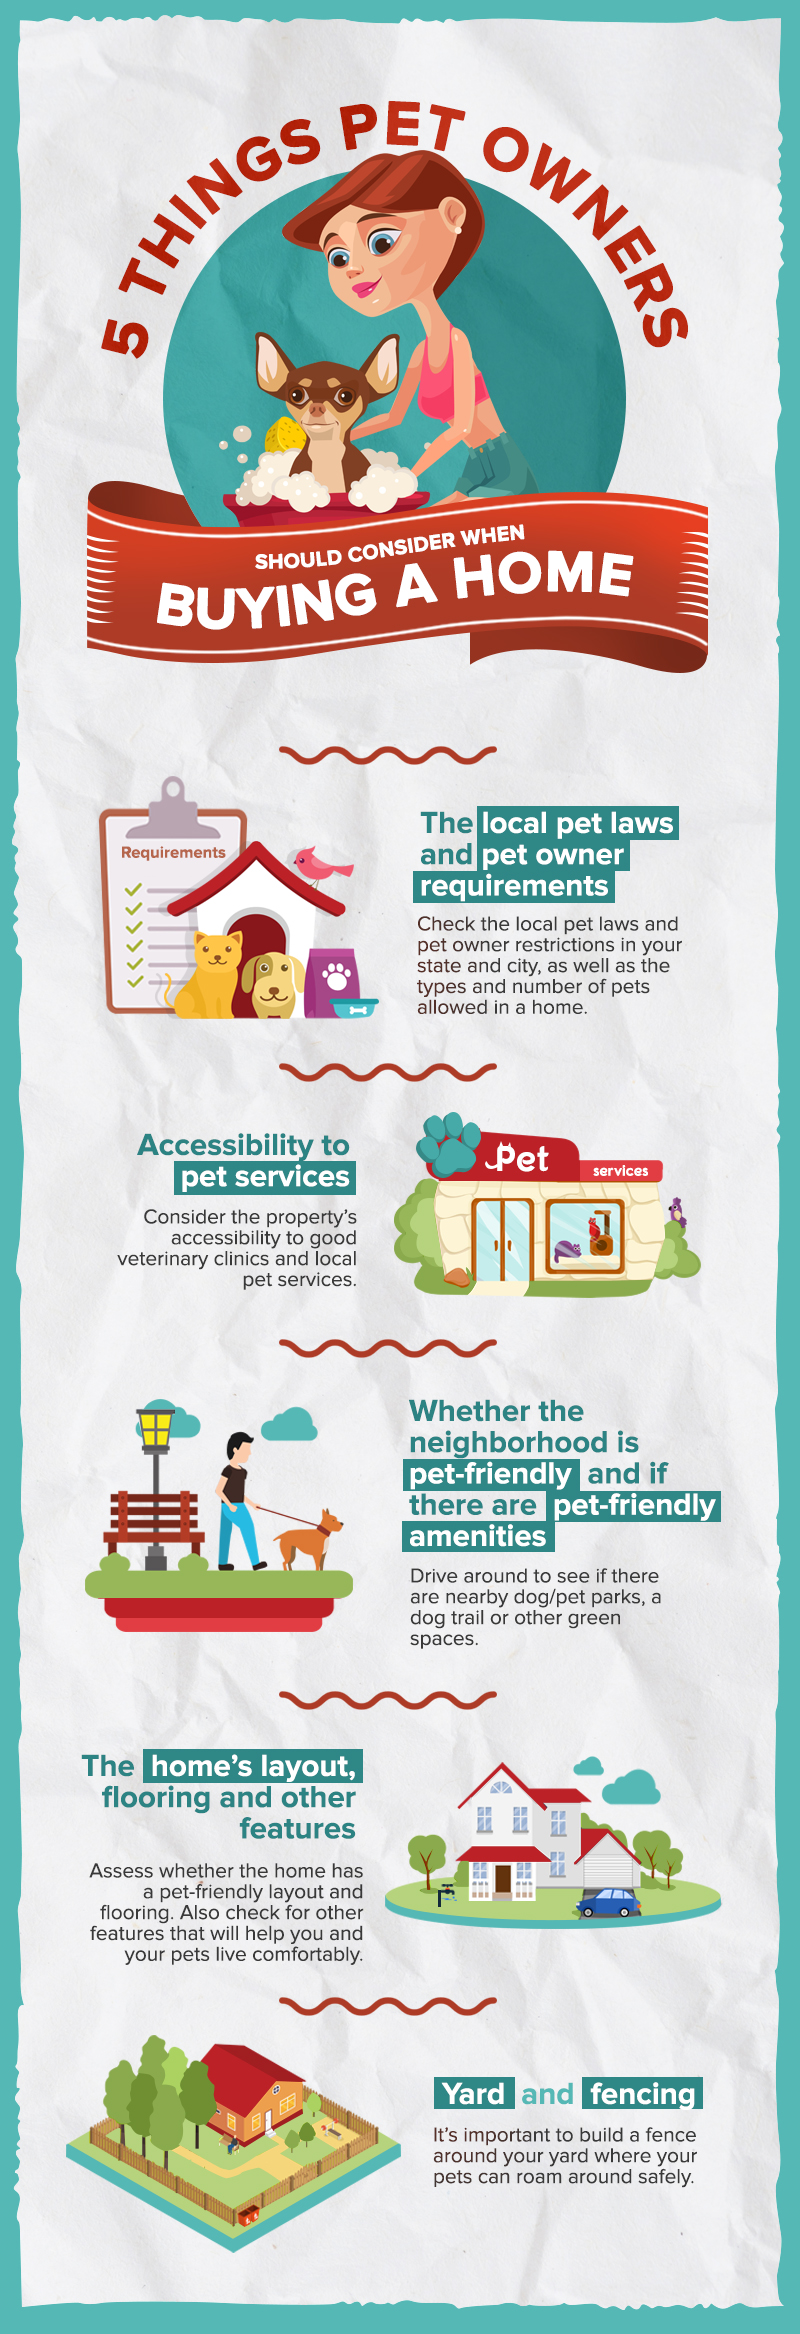 5 Things Pet Owners Should Consider When Buying A Home.jpg